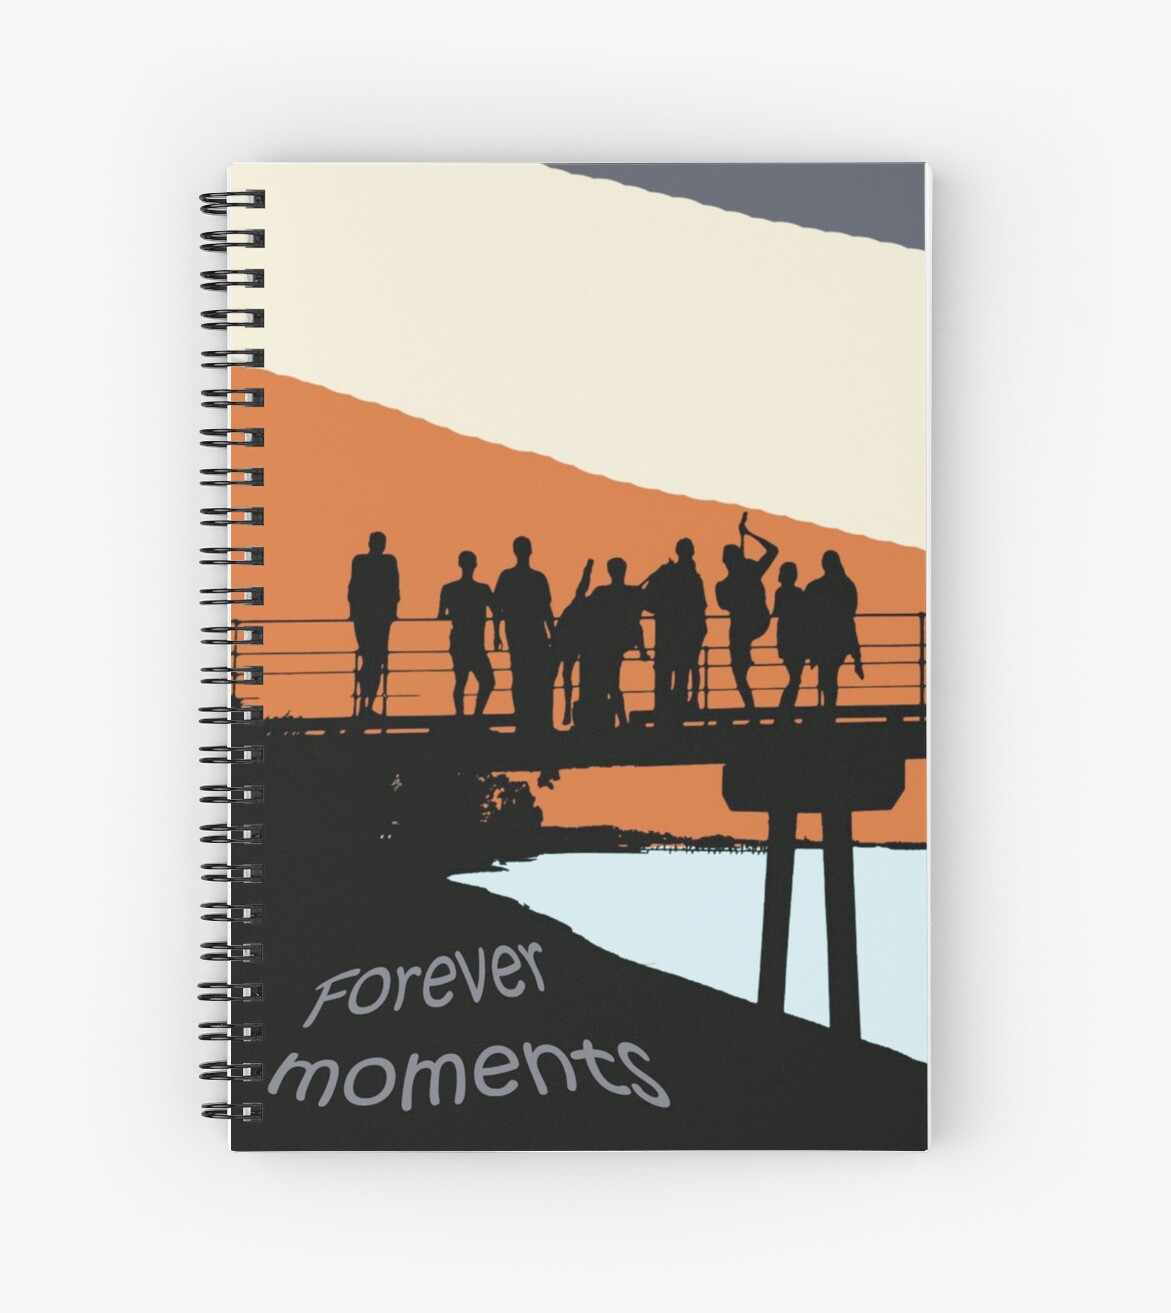 Summer Forever moments by Cardsbyakid